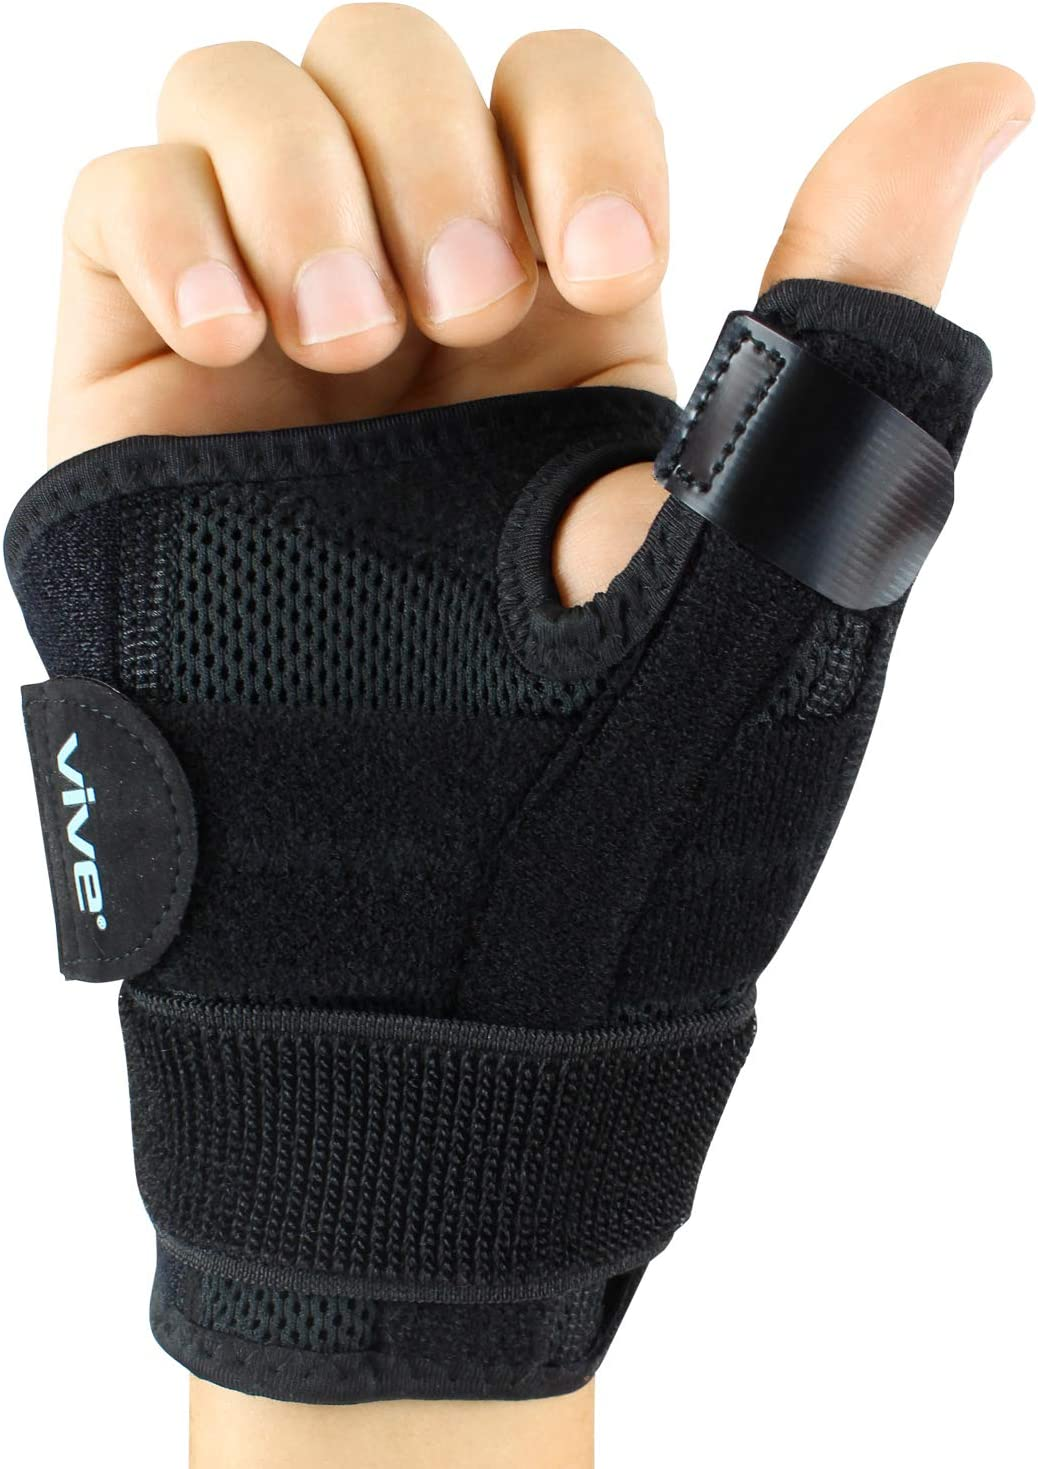 Vive Arthritis Thumb Splint - Thumb Spica Support Brace for Pain, Sprains, Strains, Arthritis, Carpal Tunnel & Trigger Thumb Immobilizer - Wrist Strap - Left or Right Hand (Black): Health & Personal Care